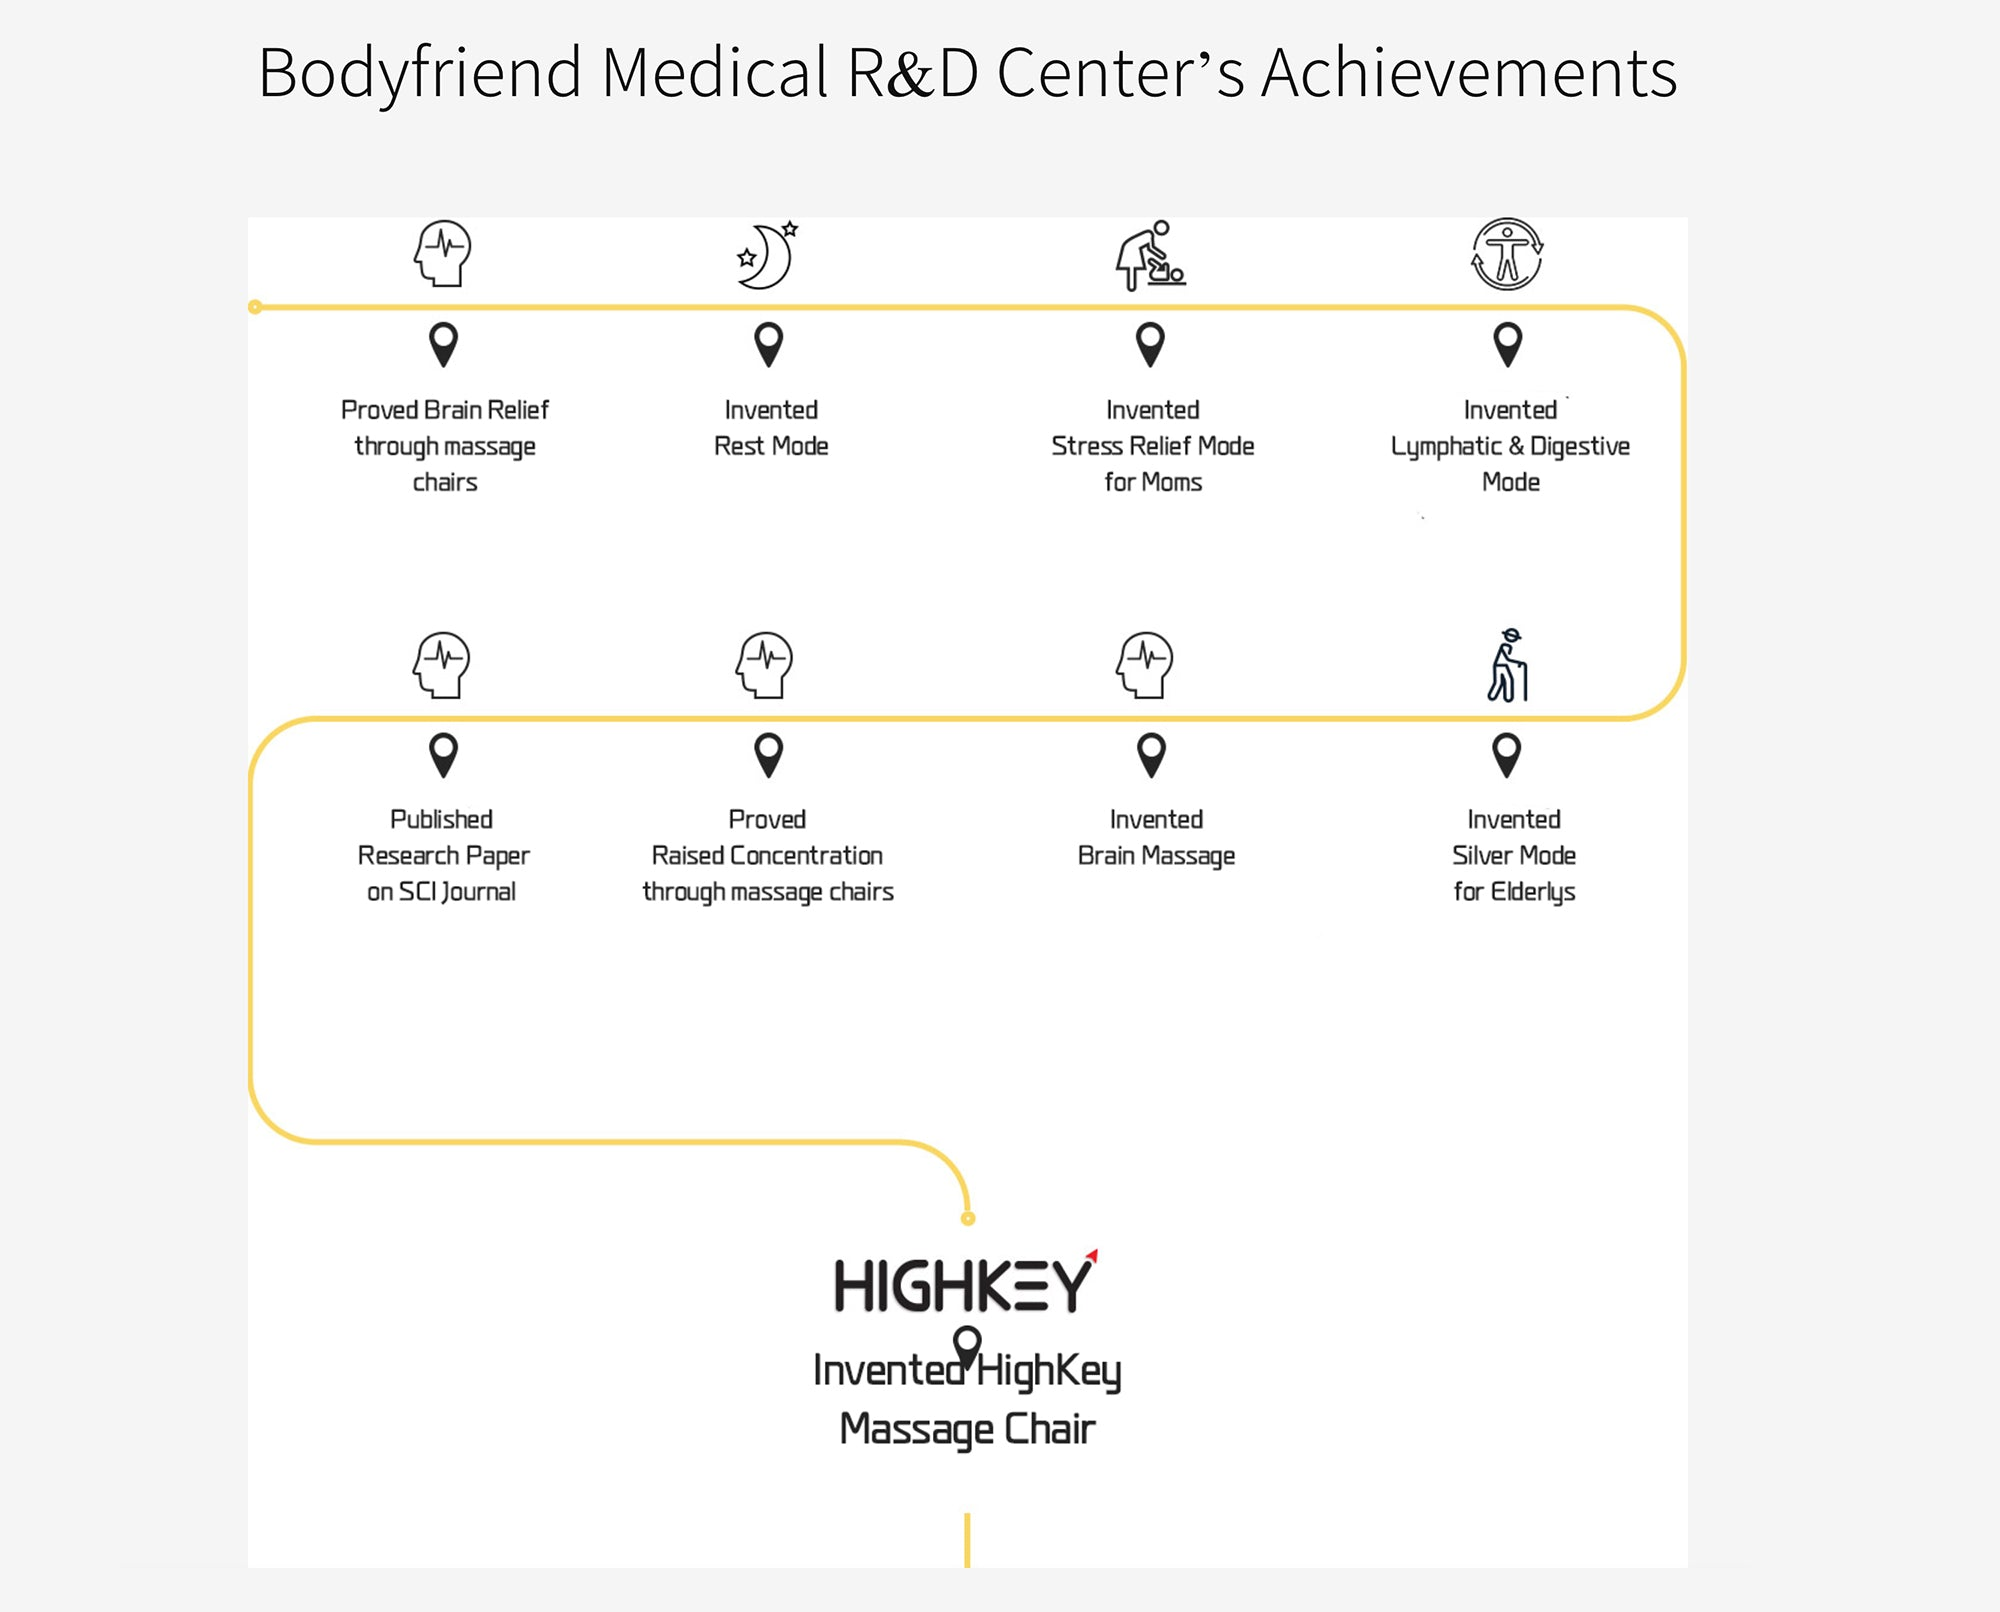 Image of Bodyfriend Medical R&D Center's Achievements